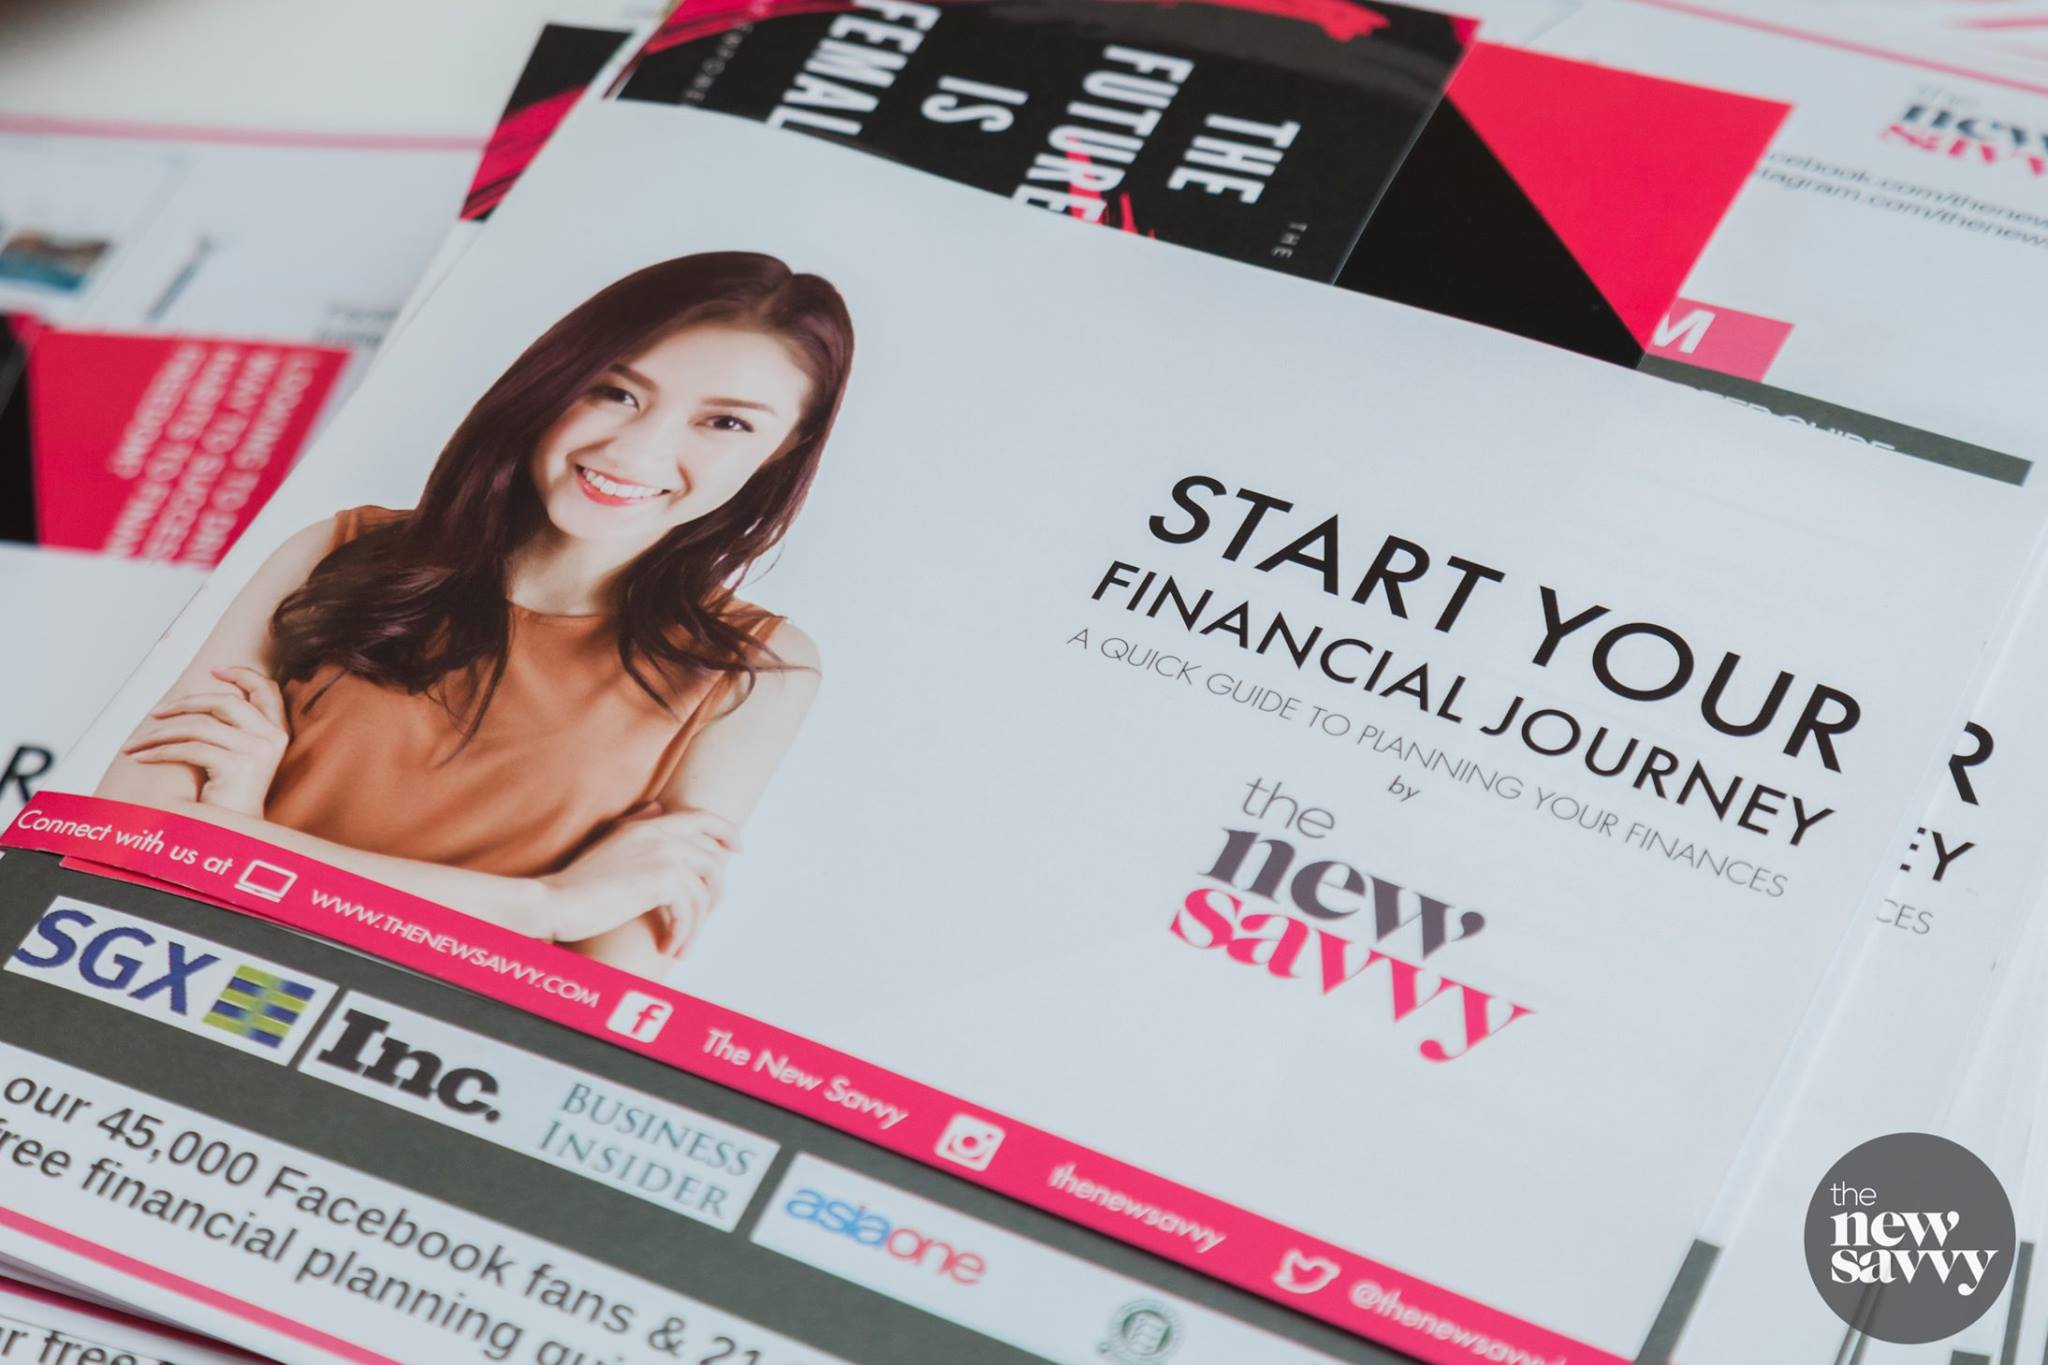 Hong Kong Networking Events, The New Savvy